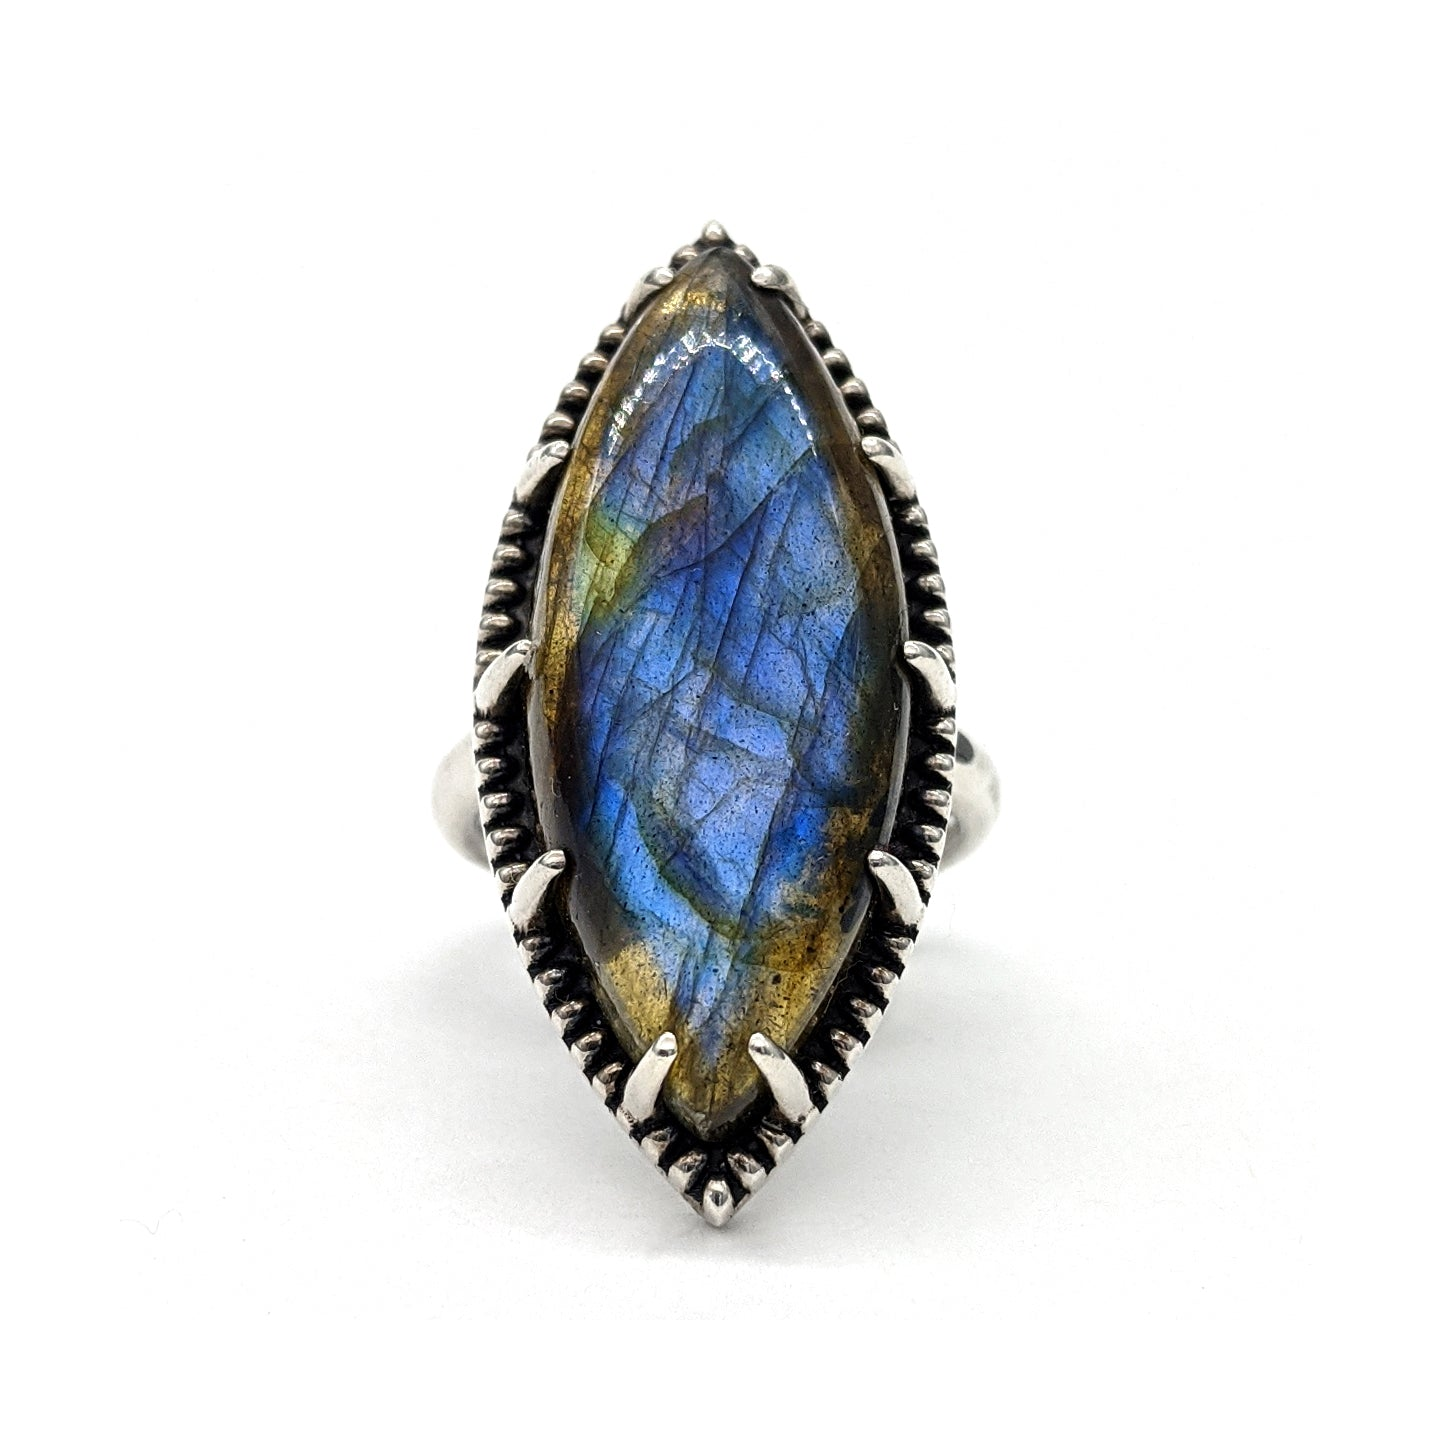 Sterling silver ring that features a blue marquise labradorite gemstone with a beaded halo.